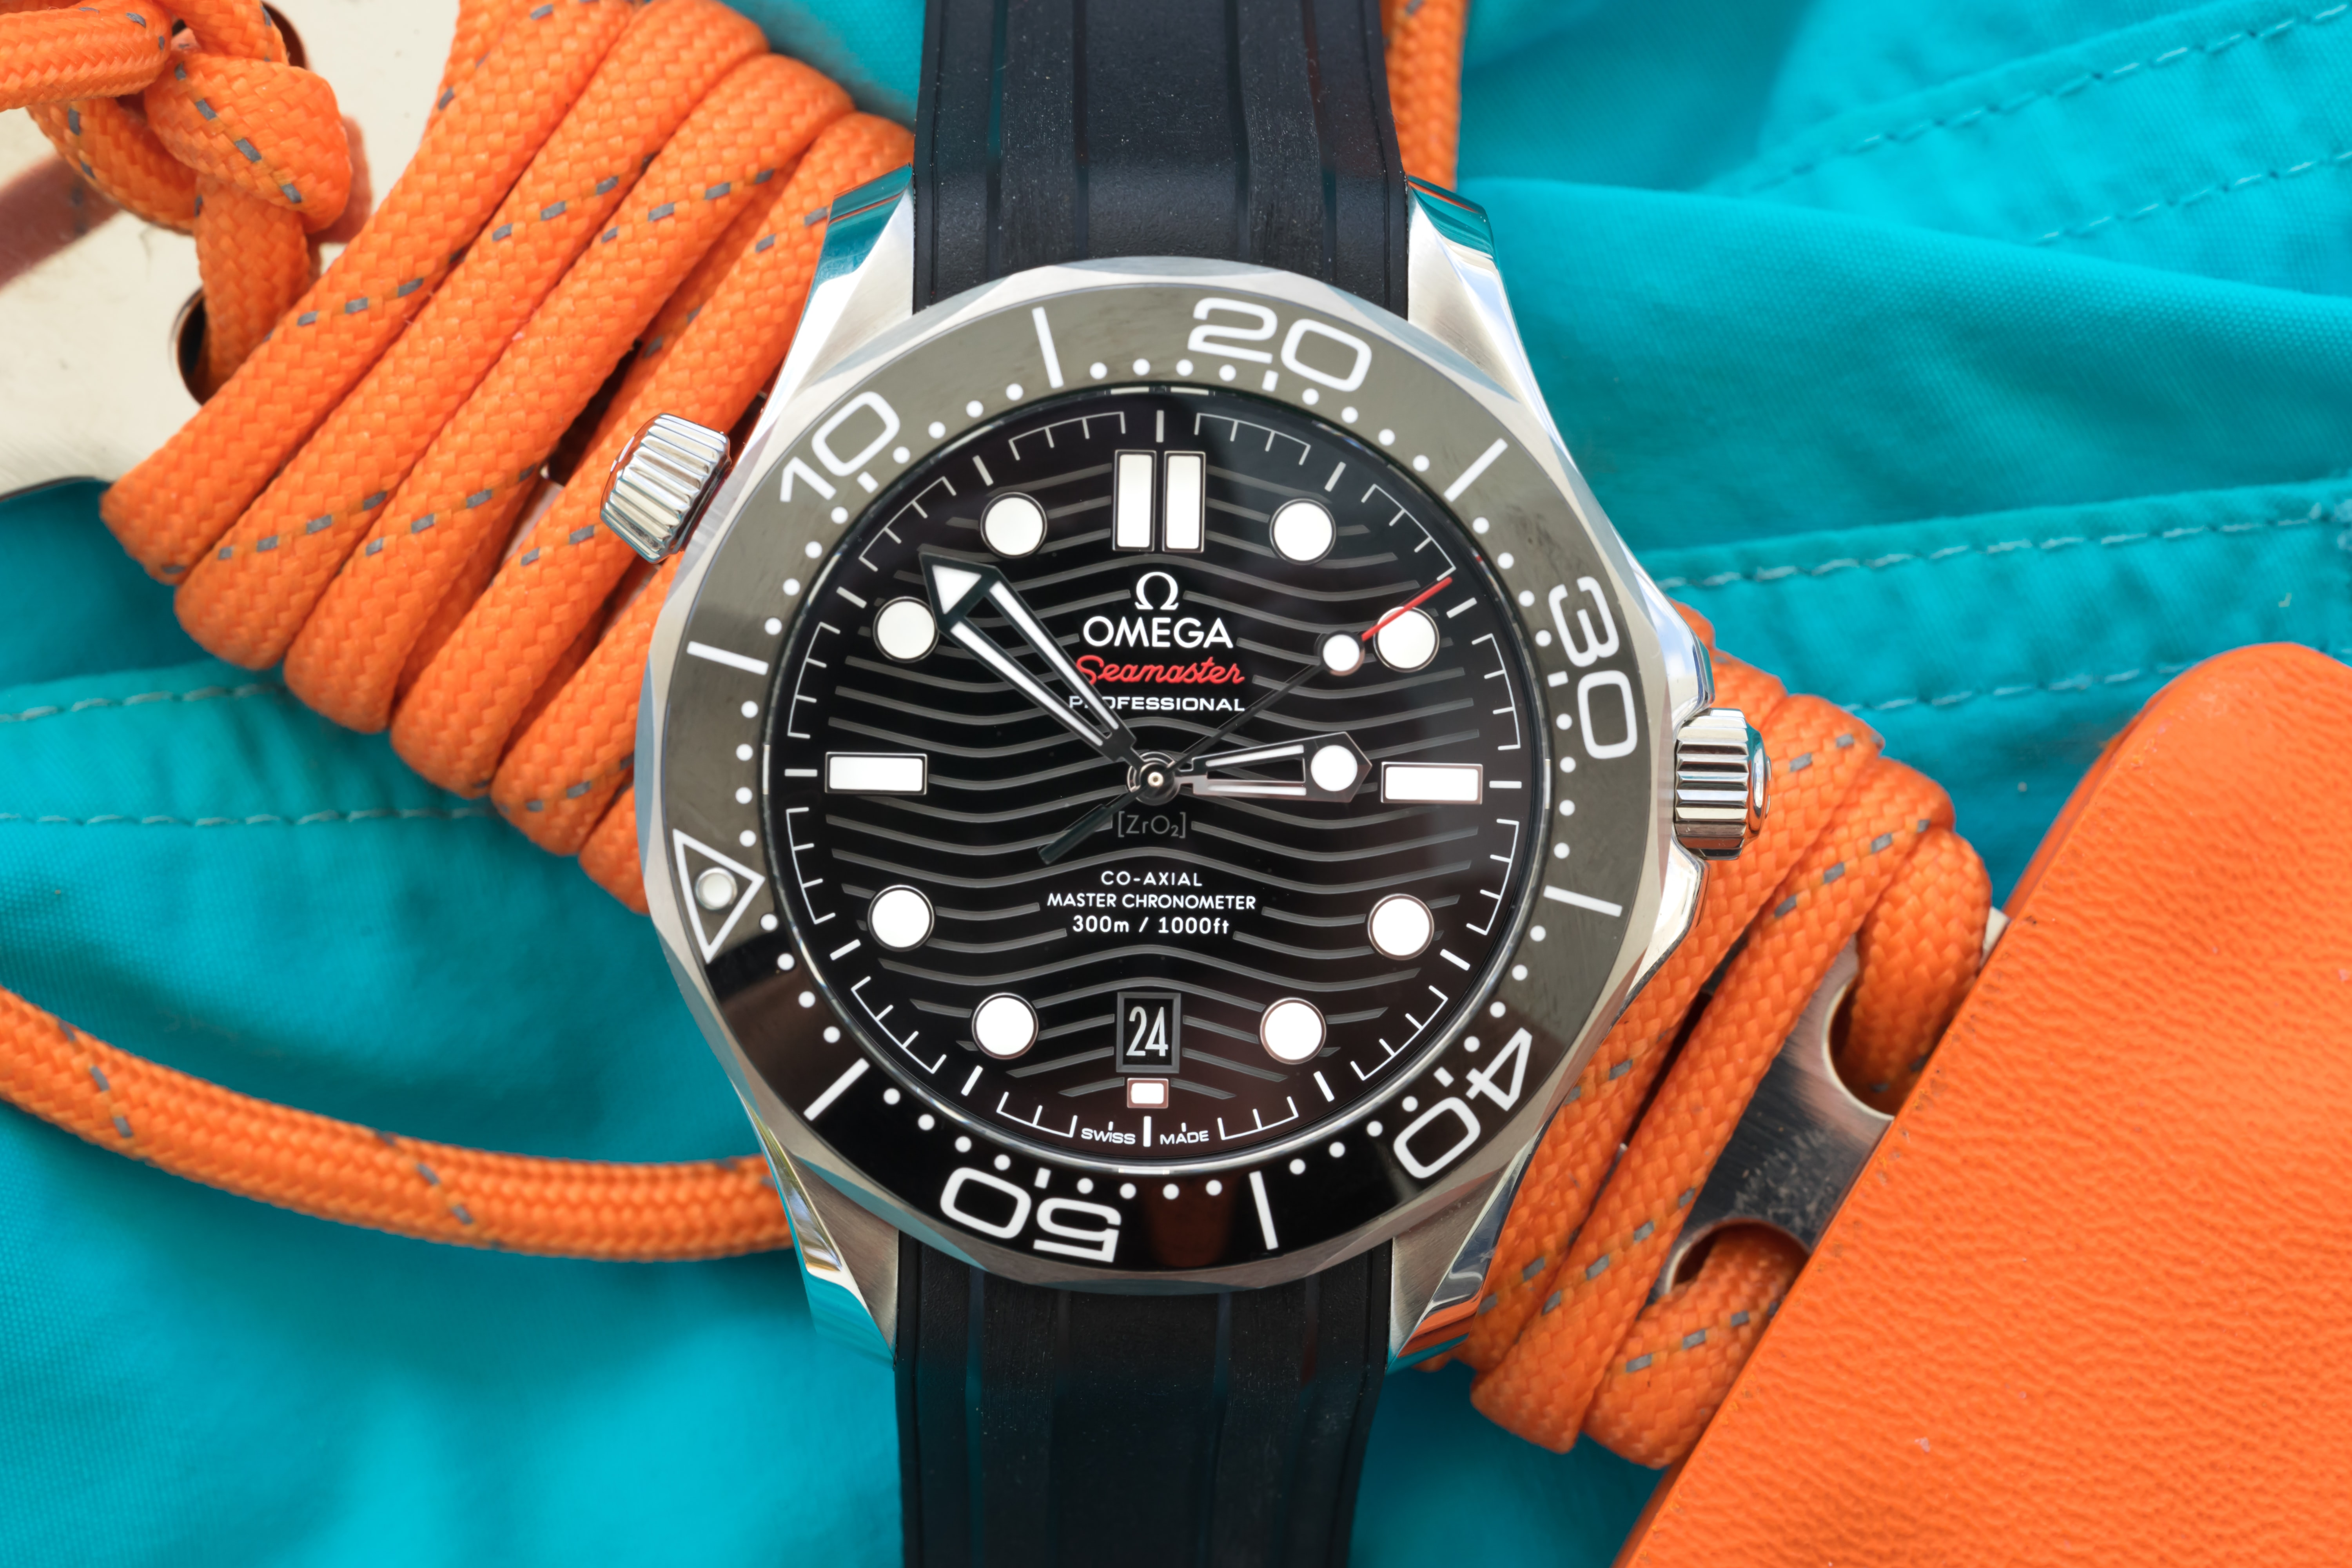 Review: The Blancpain Fifty Fathoms Bathyscaphe Day Date 70s SM300 pro 7